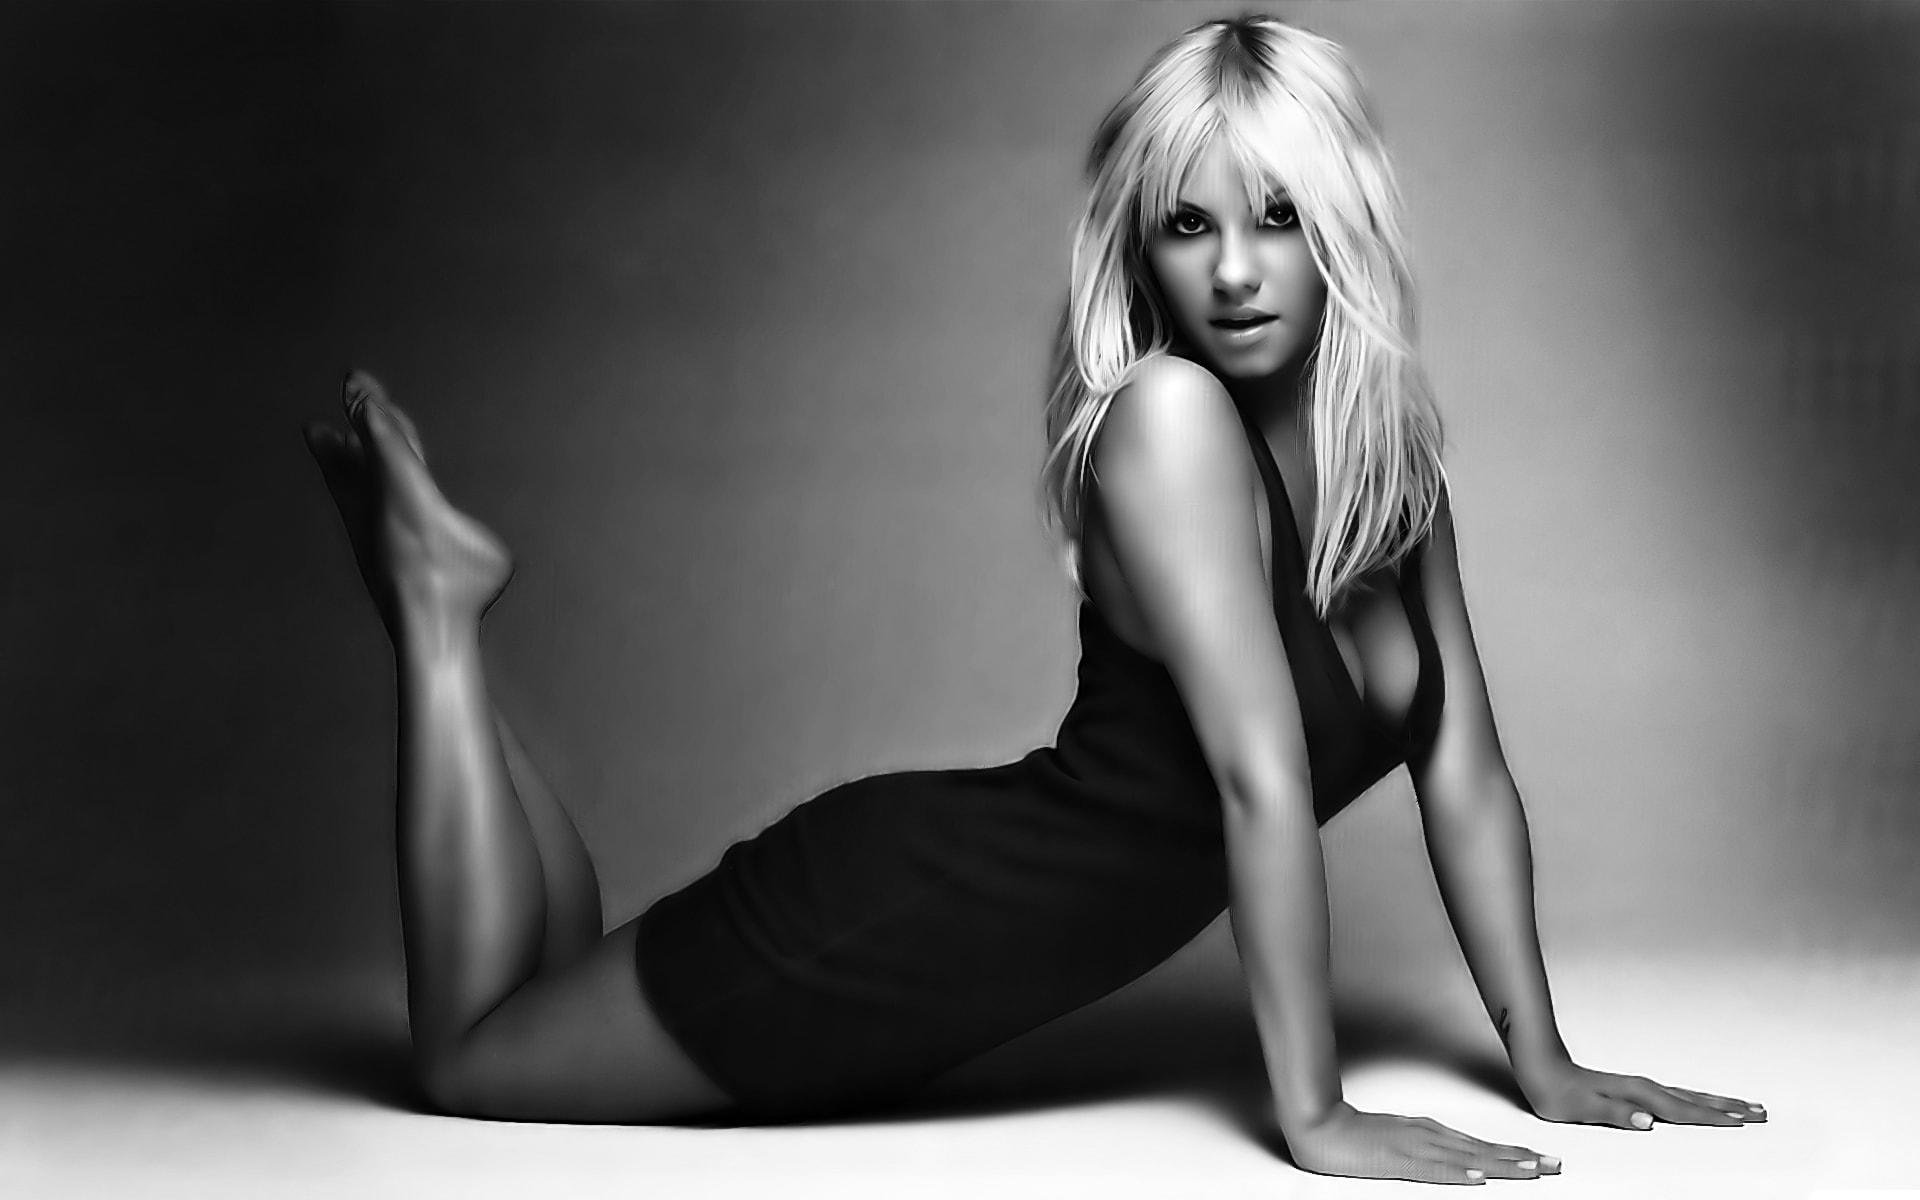 Britney Spears widescreen wallpapers